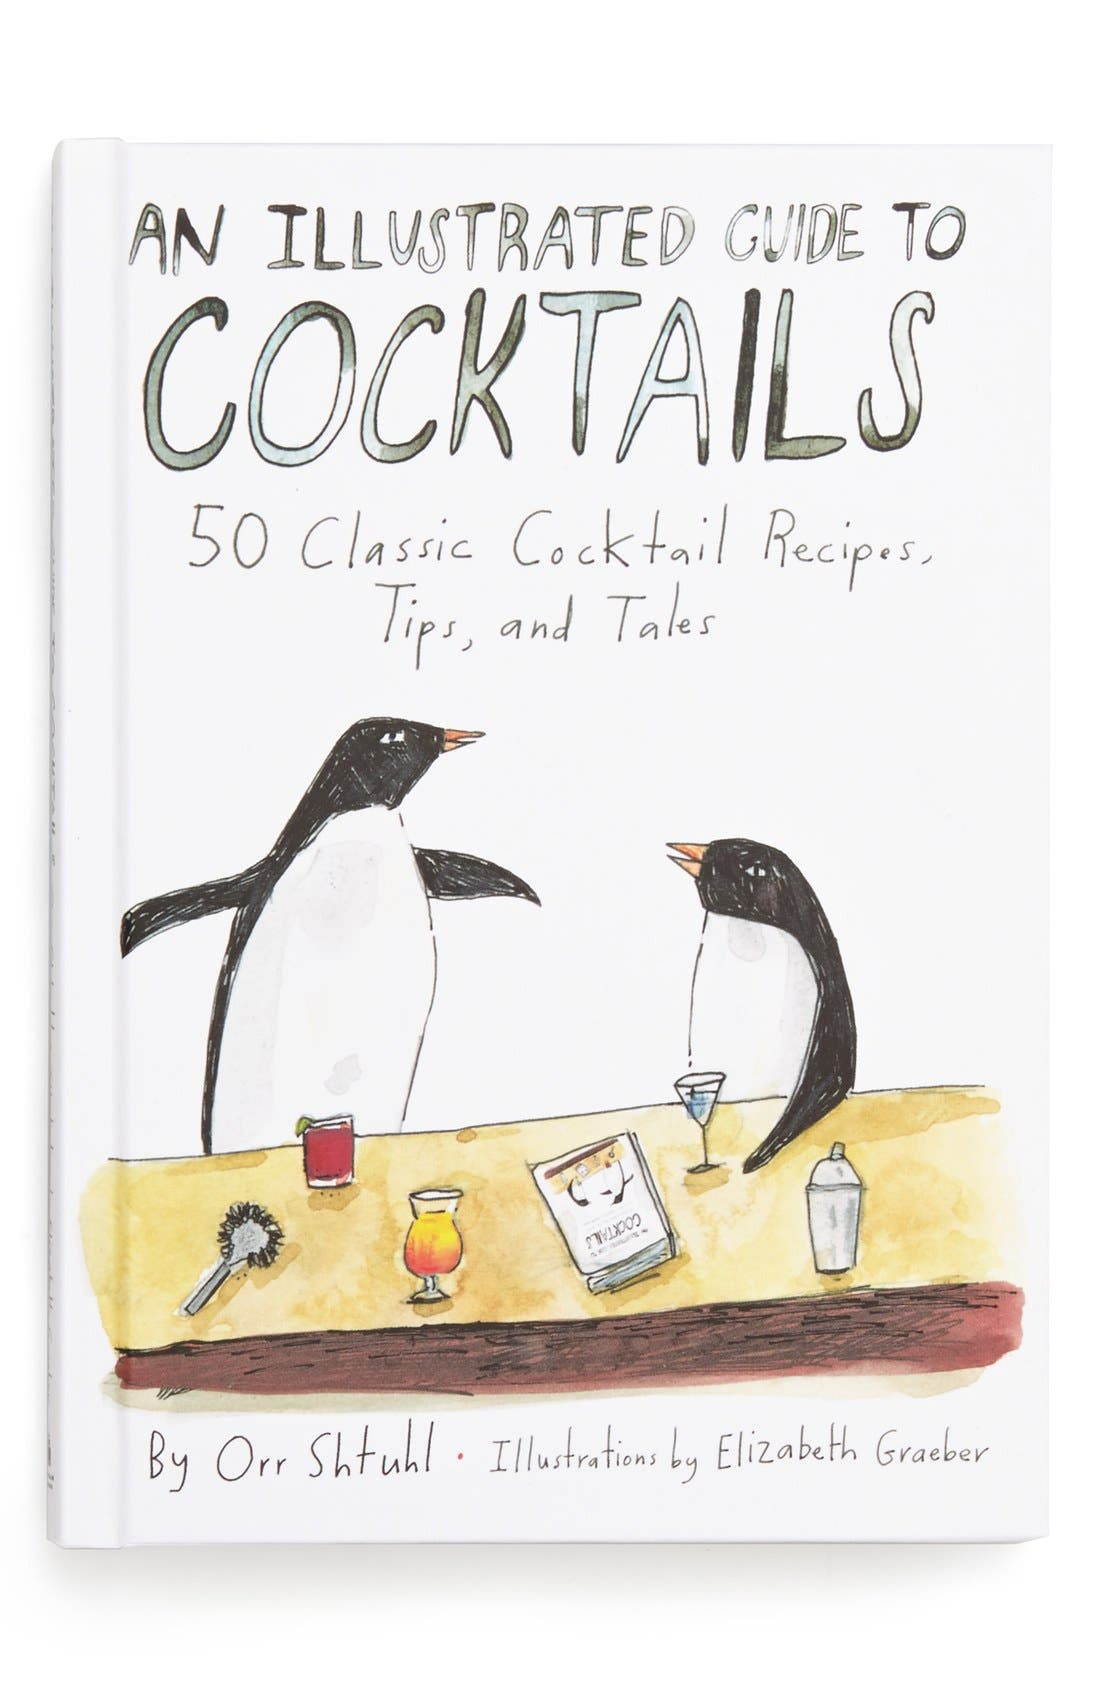 Alternate Image 1 Selected - 'An Illustrated Guide to Cocktails' Book